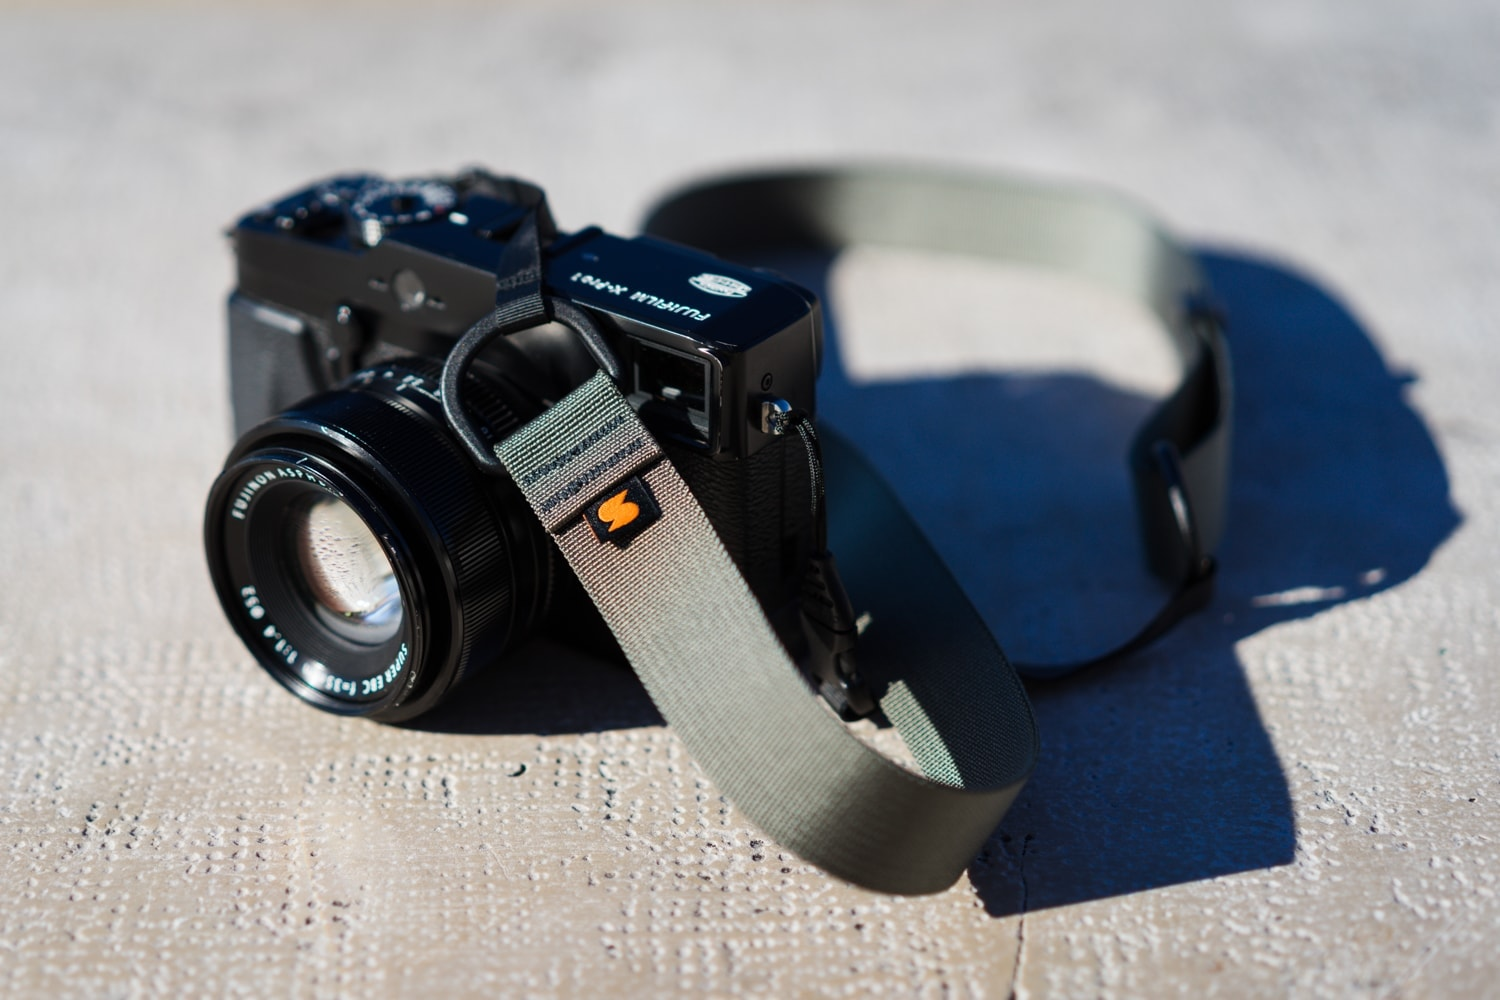 Simplr M1a Mirrorless Camera Strap Review à fujixpassion.com